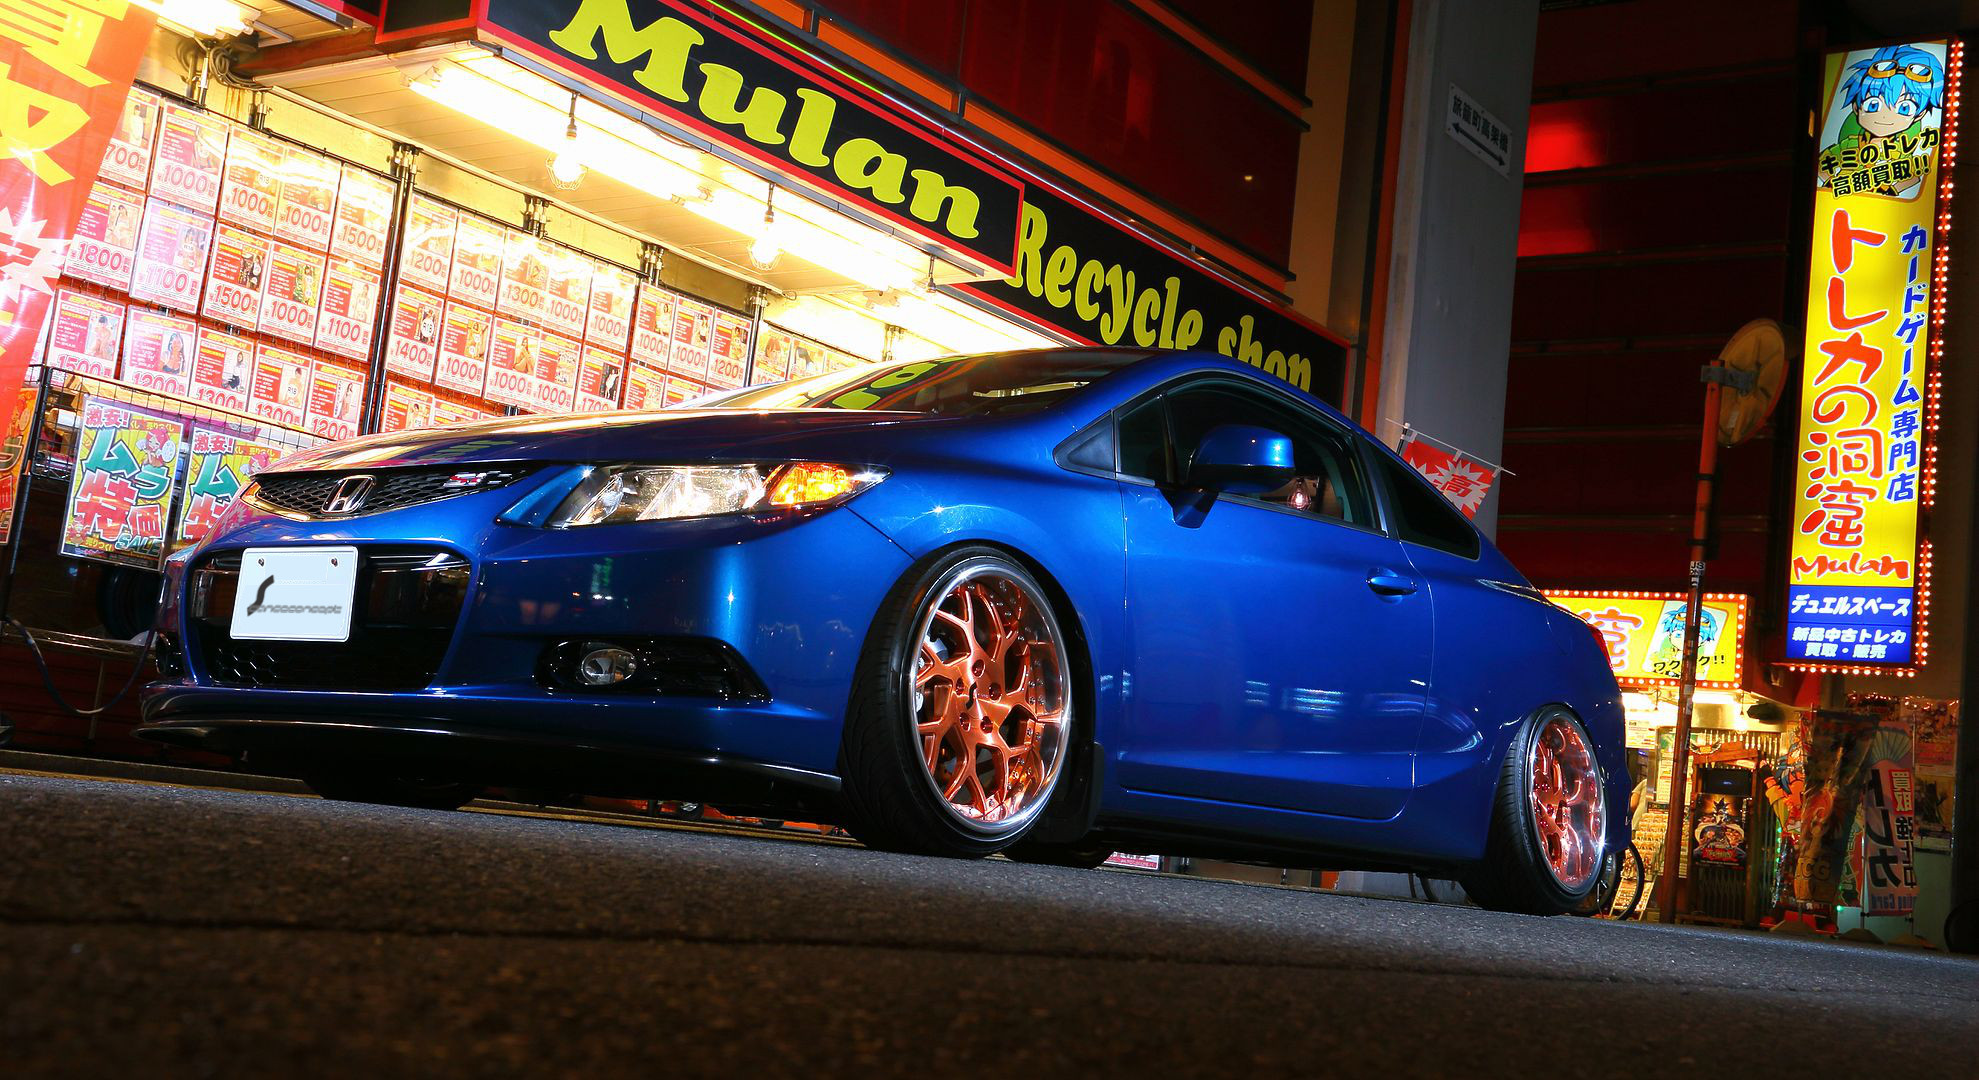 Stanceconcept Forged Tetsuone/Honda civic in TOKYO